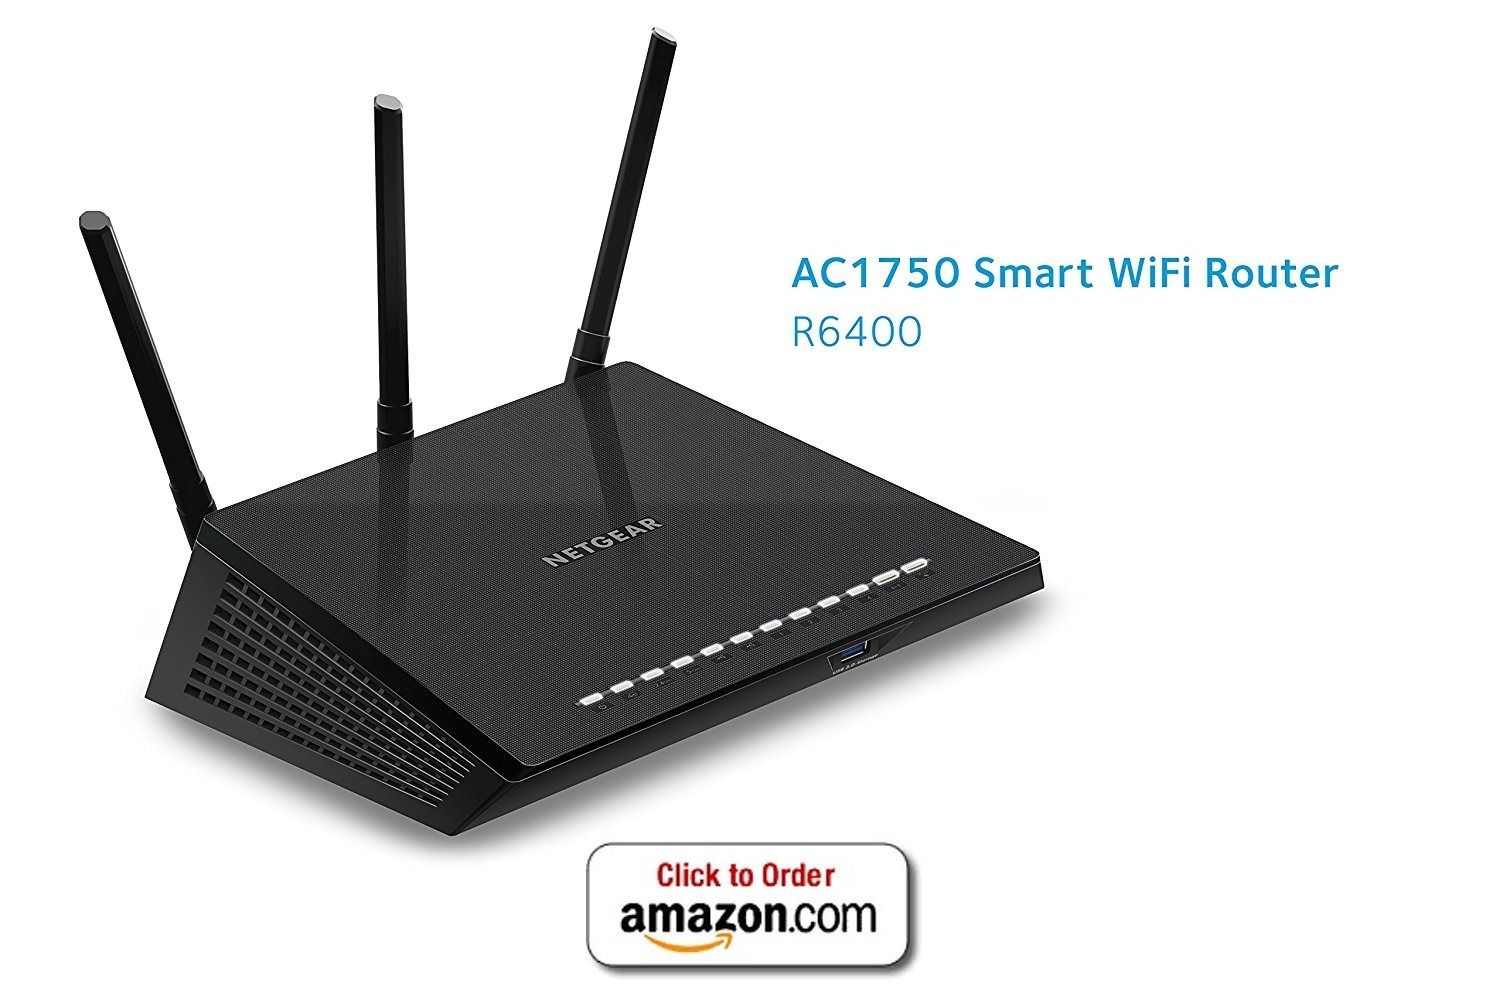 netgear smart wifi router with dual band under $100